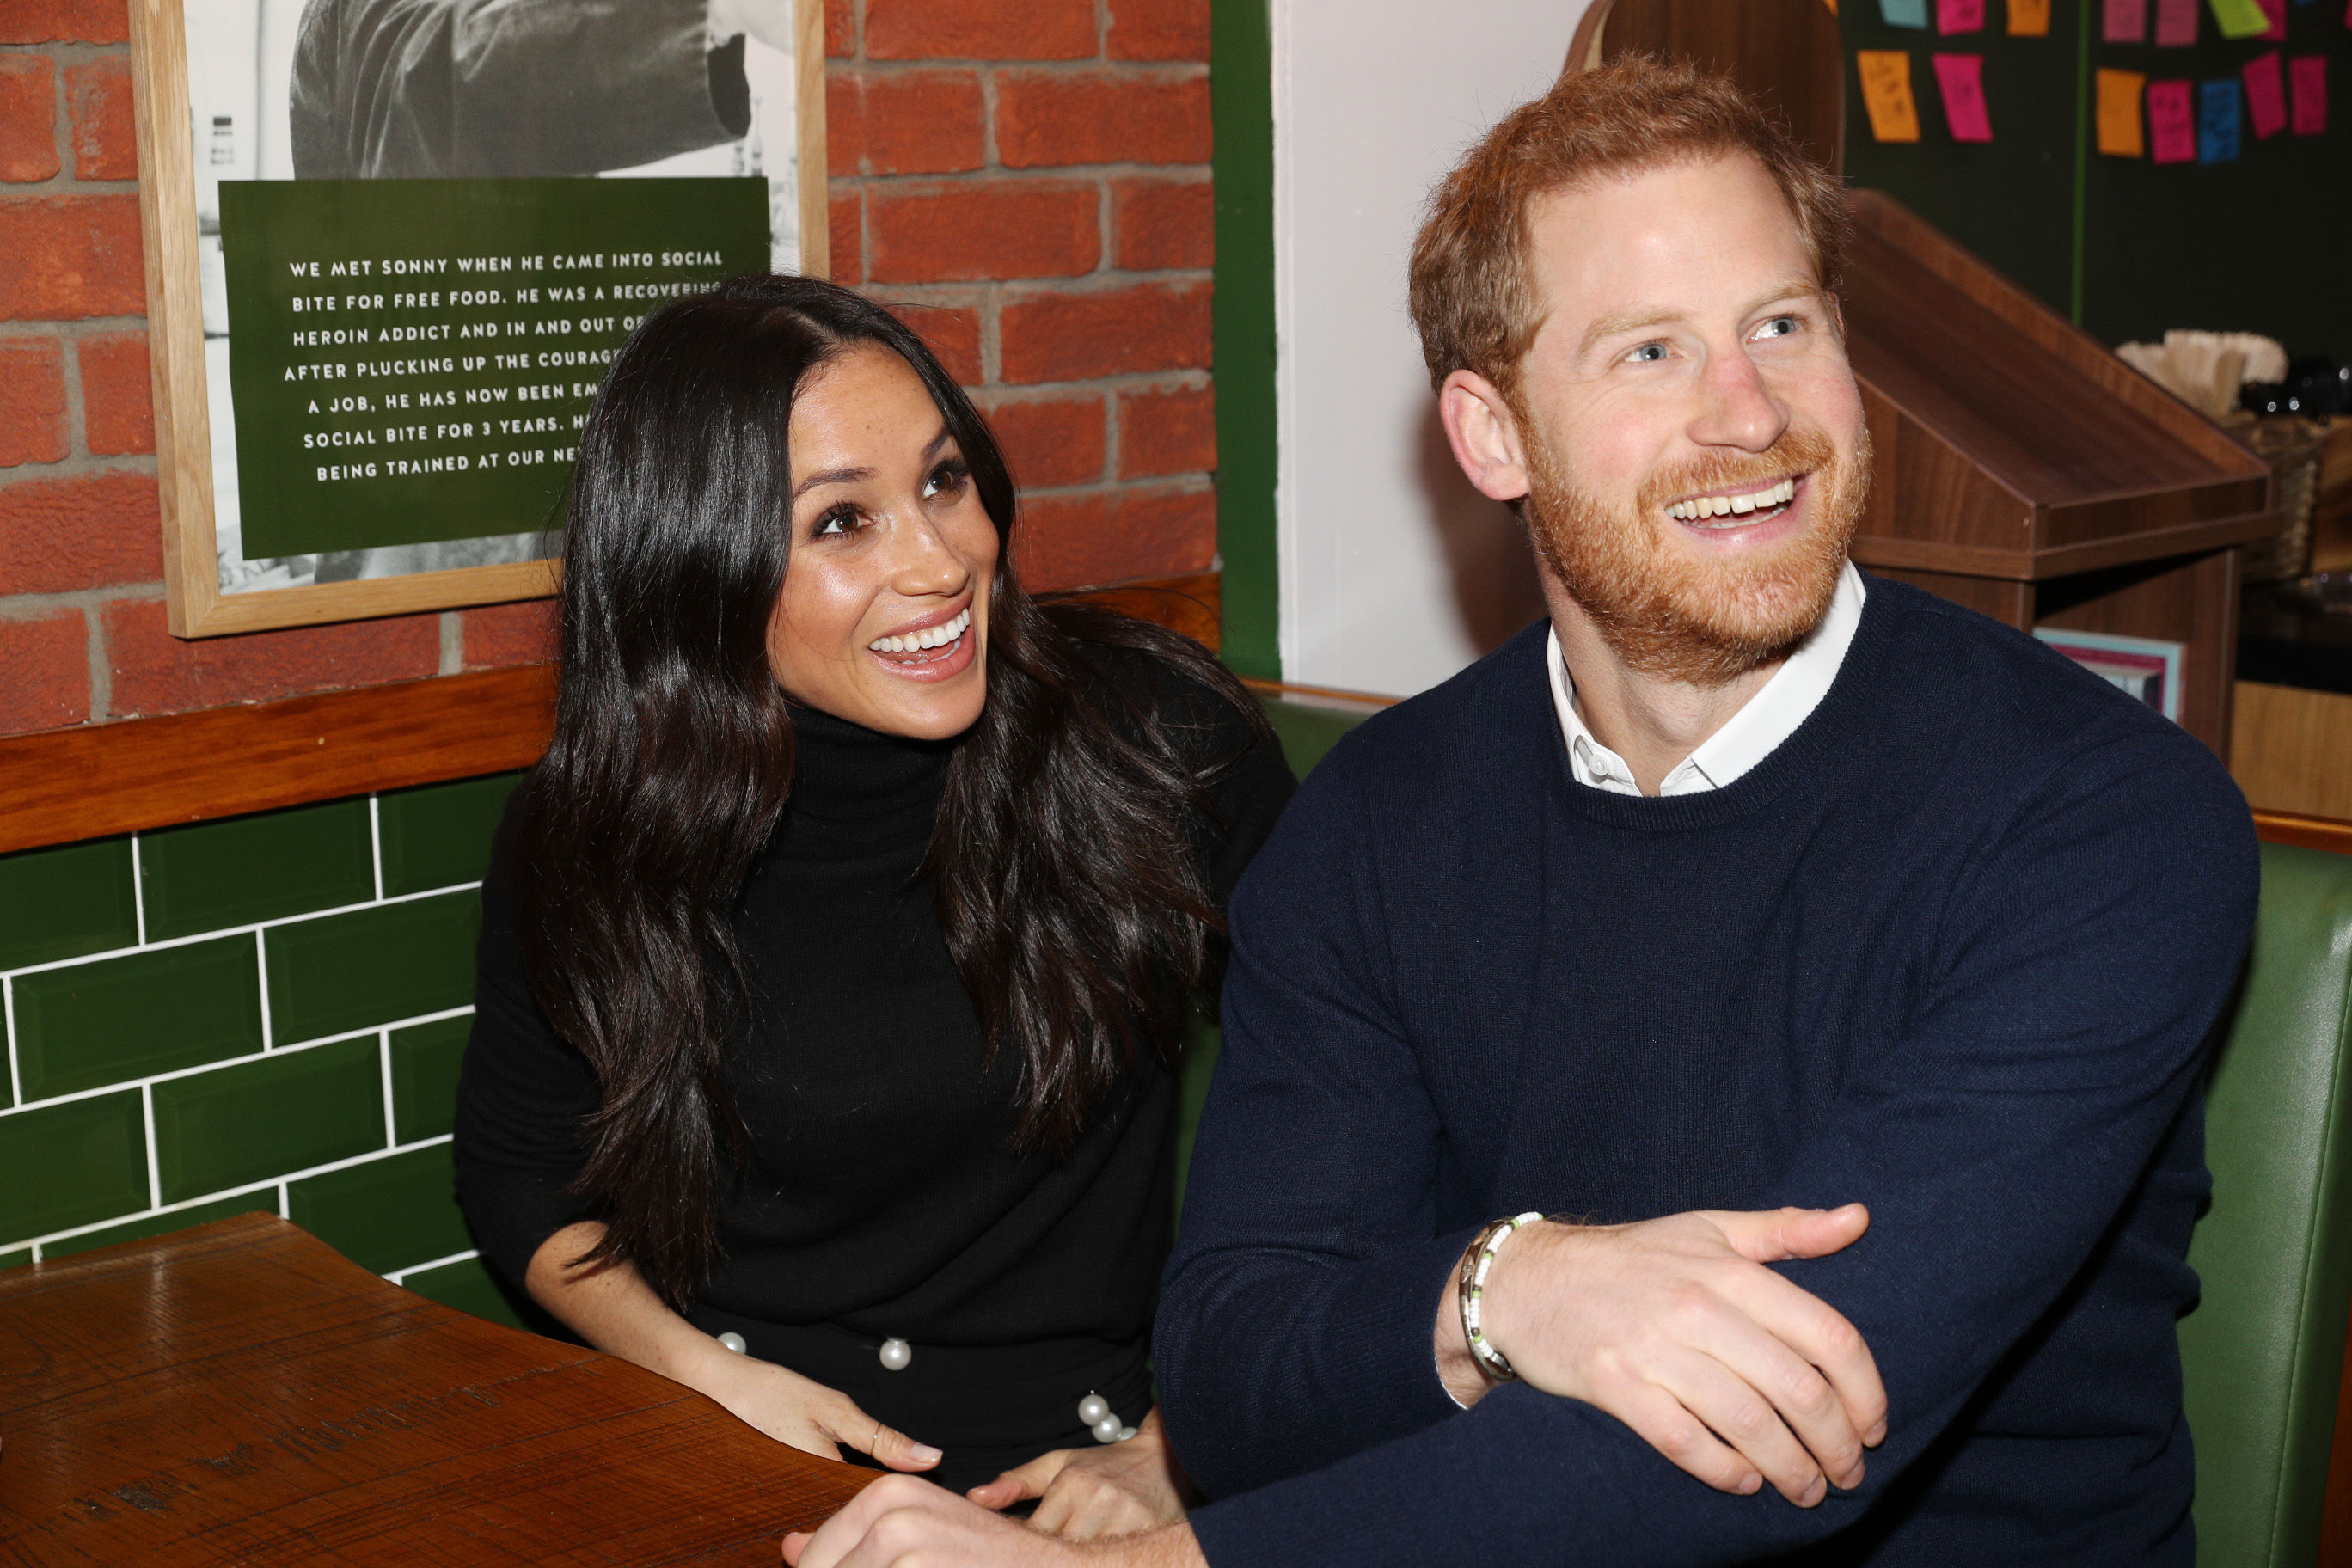 Prince Harry and Meghan Markle during a visit to Social Bite in Edinburgh, during their visit to Scotland. (Owen Humphreys/PA Wire)